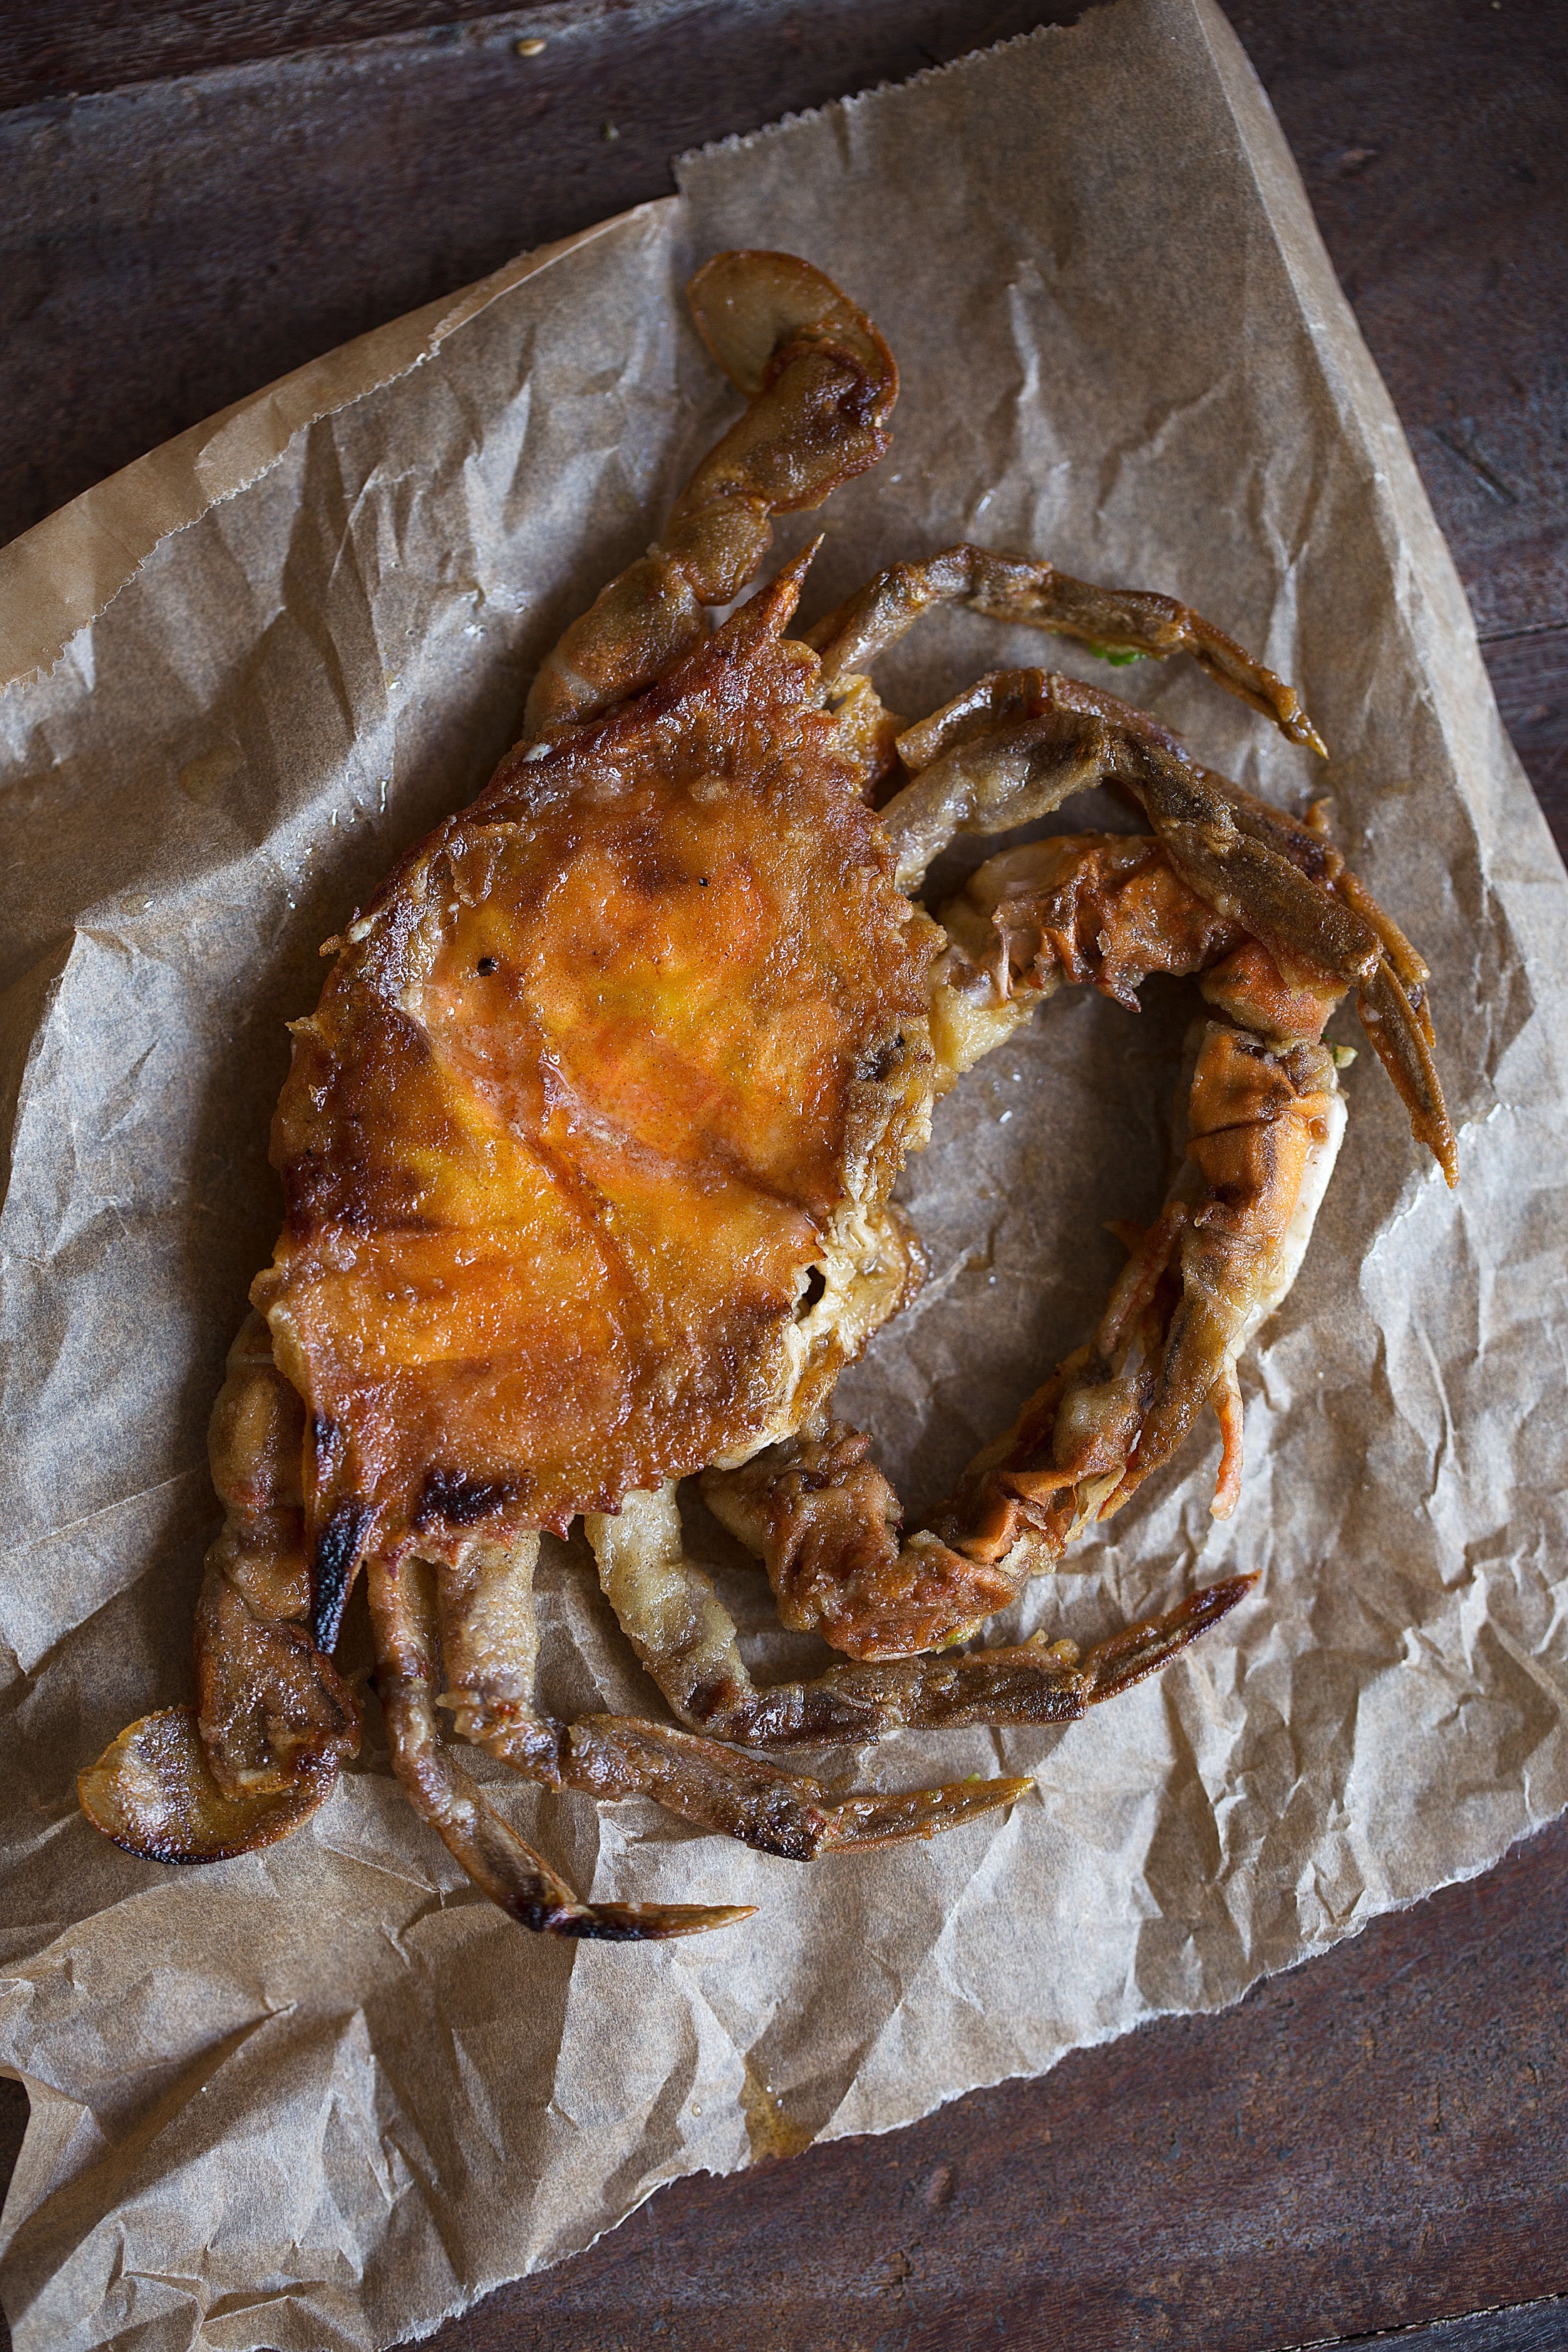 soft shell crab cooked